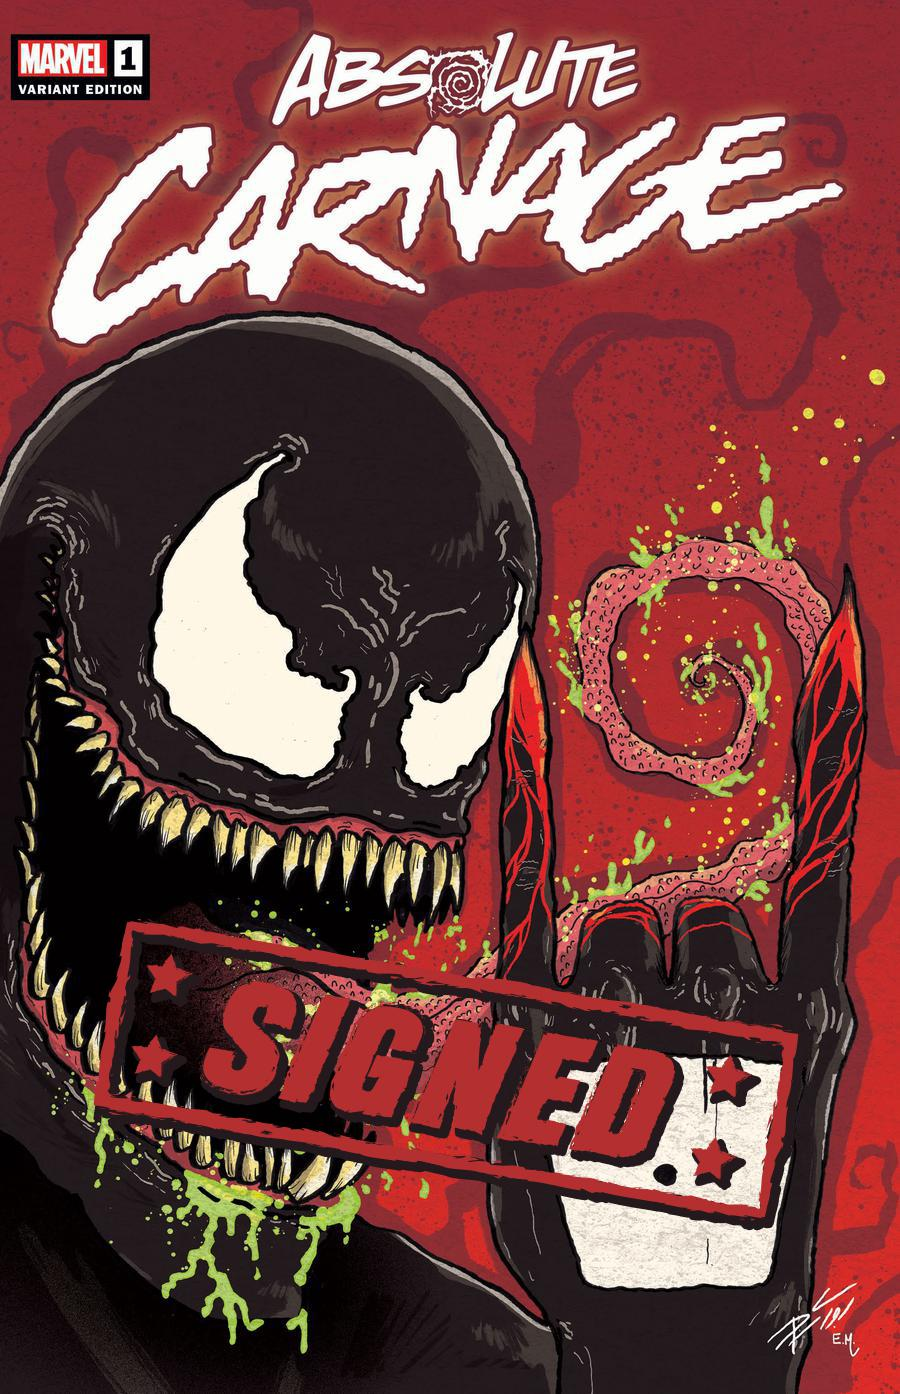 Absolute Carnage #1  Midtown Exclusive Donny Cates Variant Cover Signed By Donny Cates & Ryan Stegman